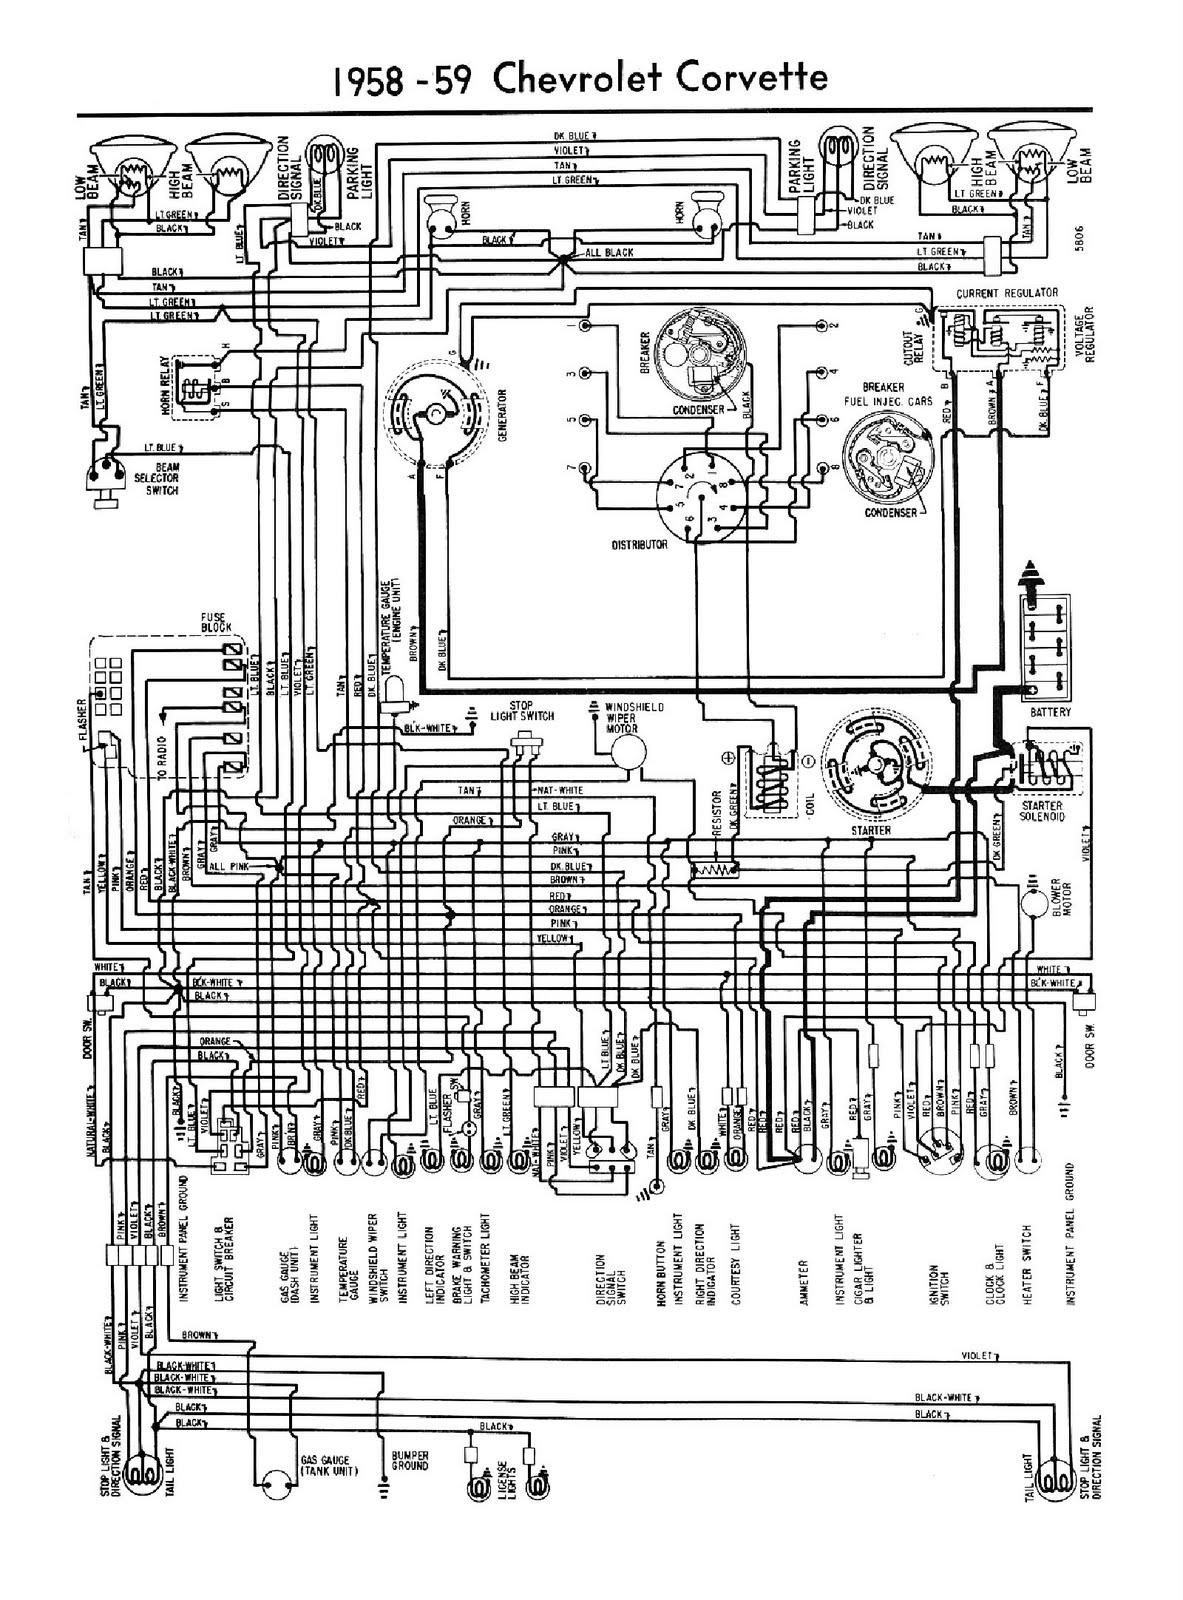 1959 Cadillac Wiring Diagram Data Schema Diagrams Enthusiast U2022 Rh Rasalibre Co Deville